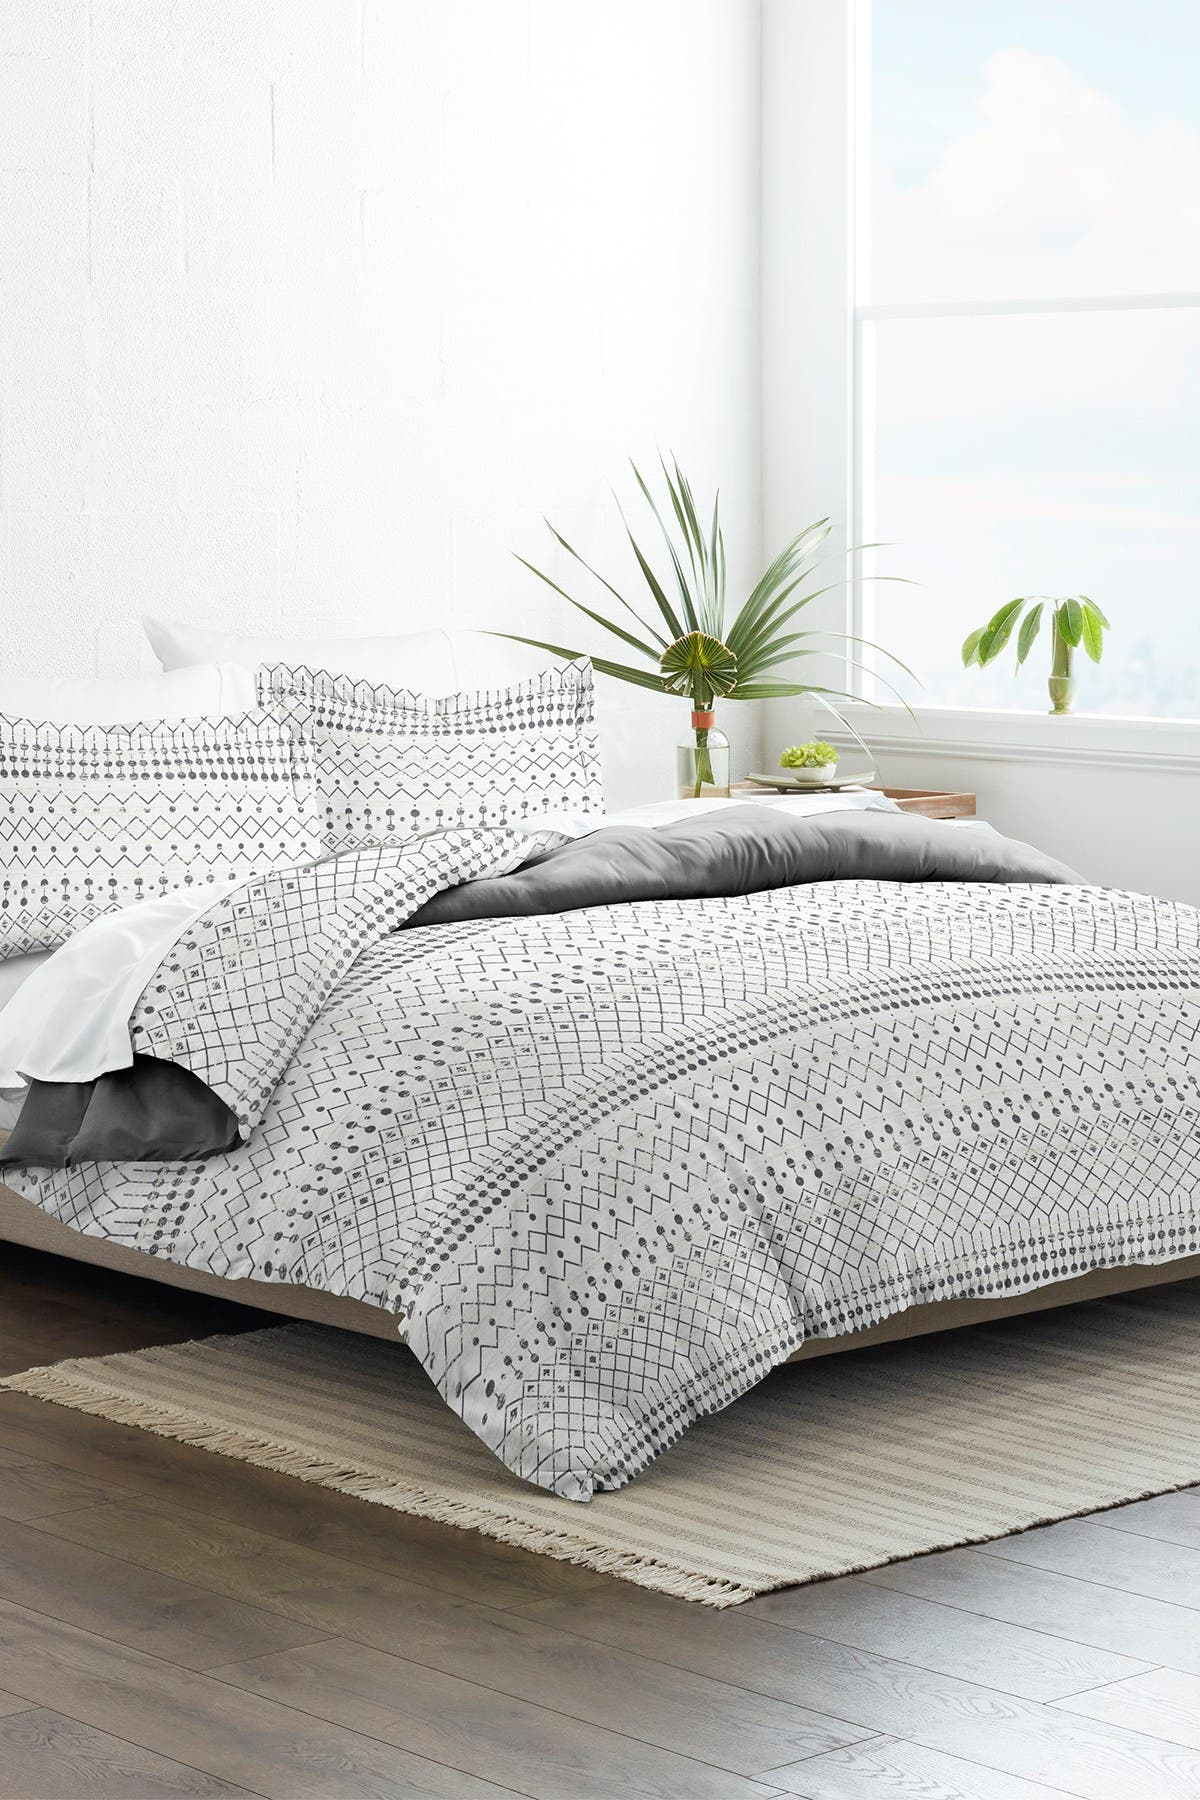 Image of IENJOY HOME Home Collection Premium Ultra Soft Etched Gate Pattern 3-Piece Full/Queen Reversible Duvet Cover Set - Gray